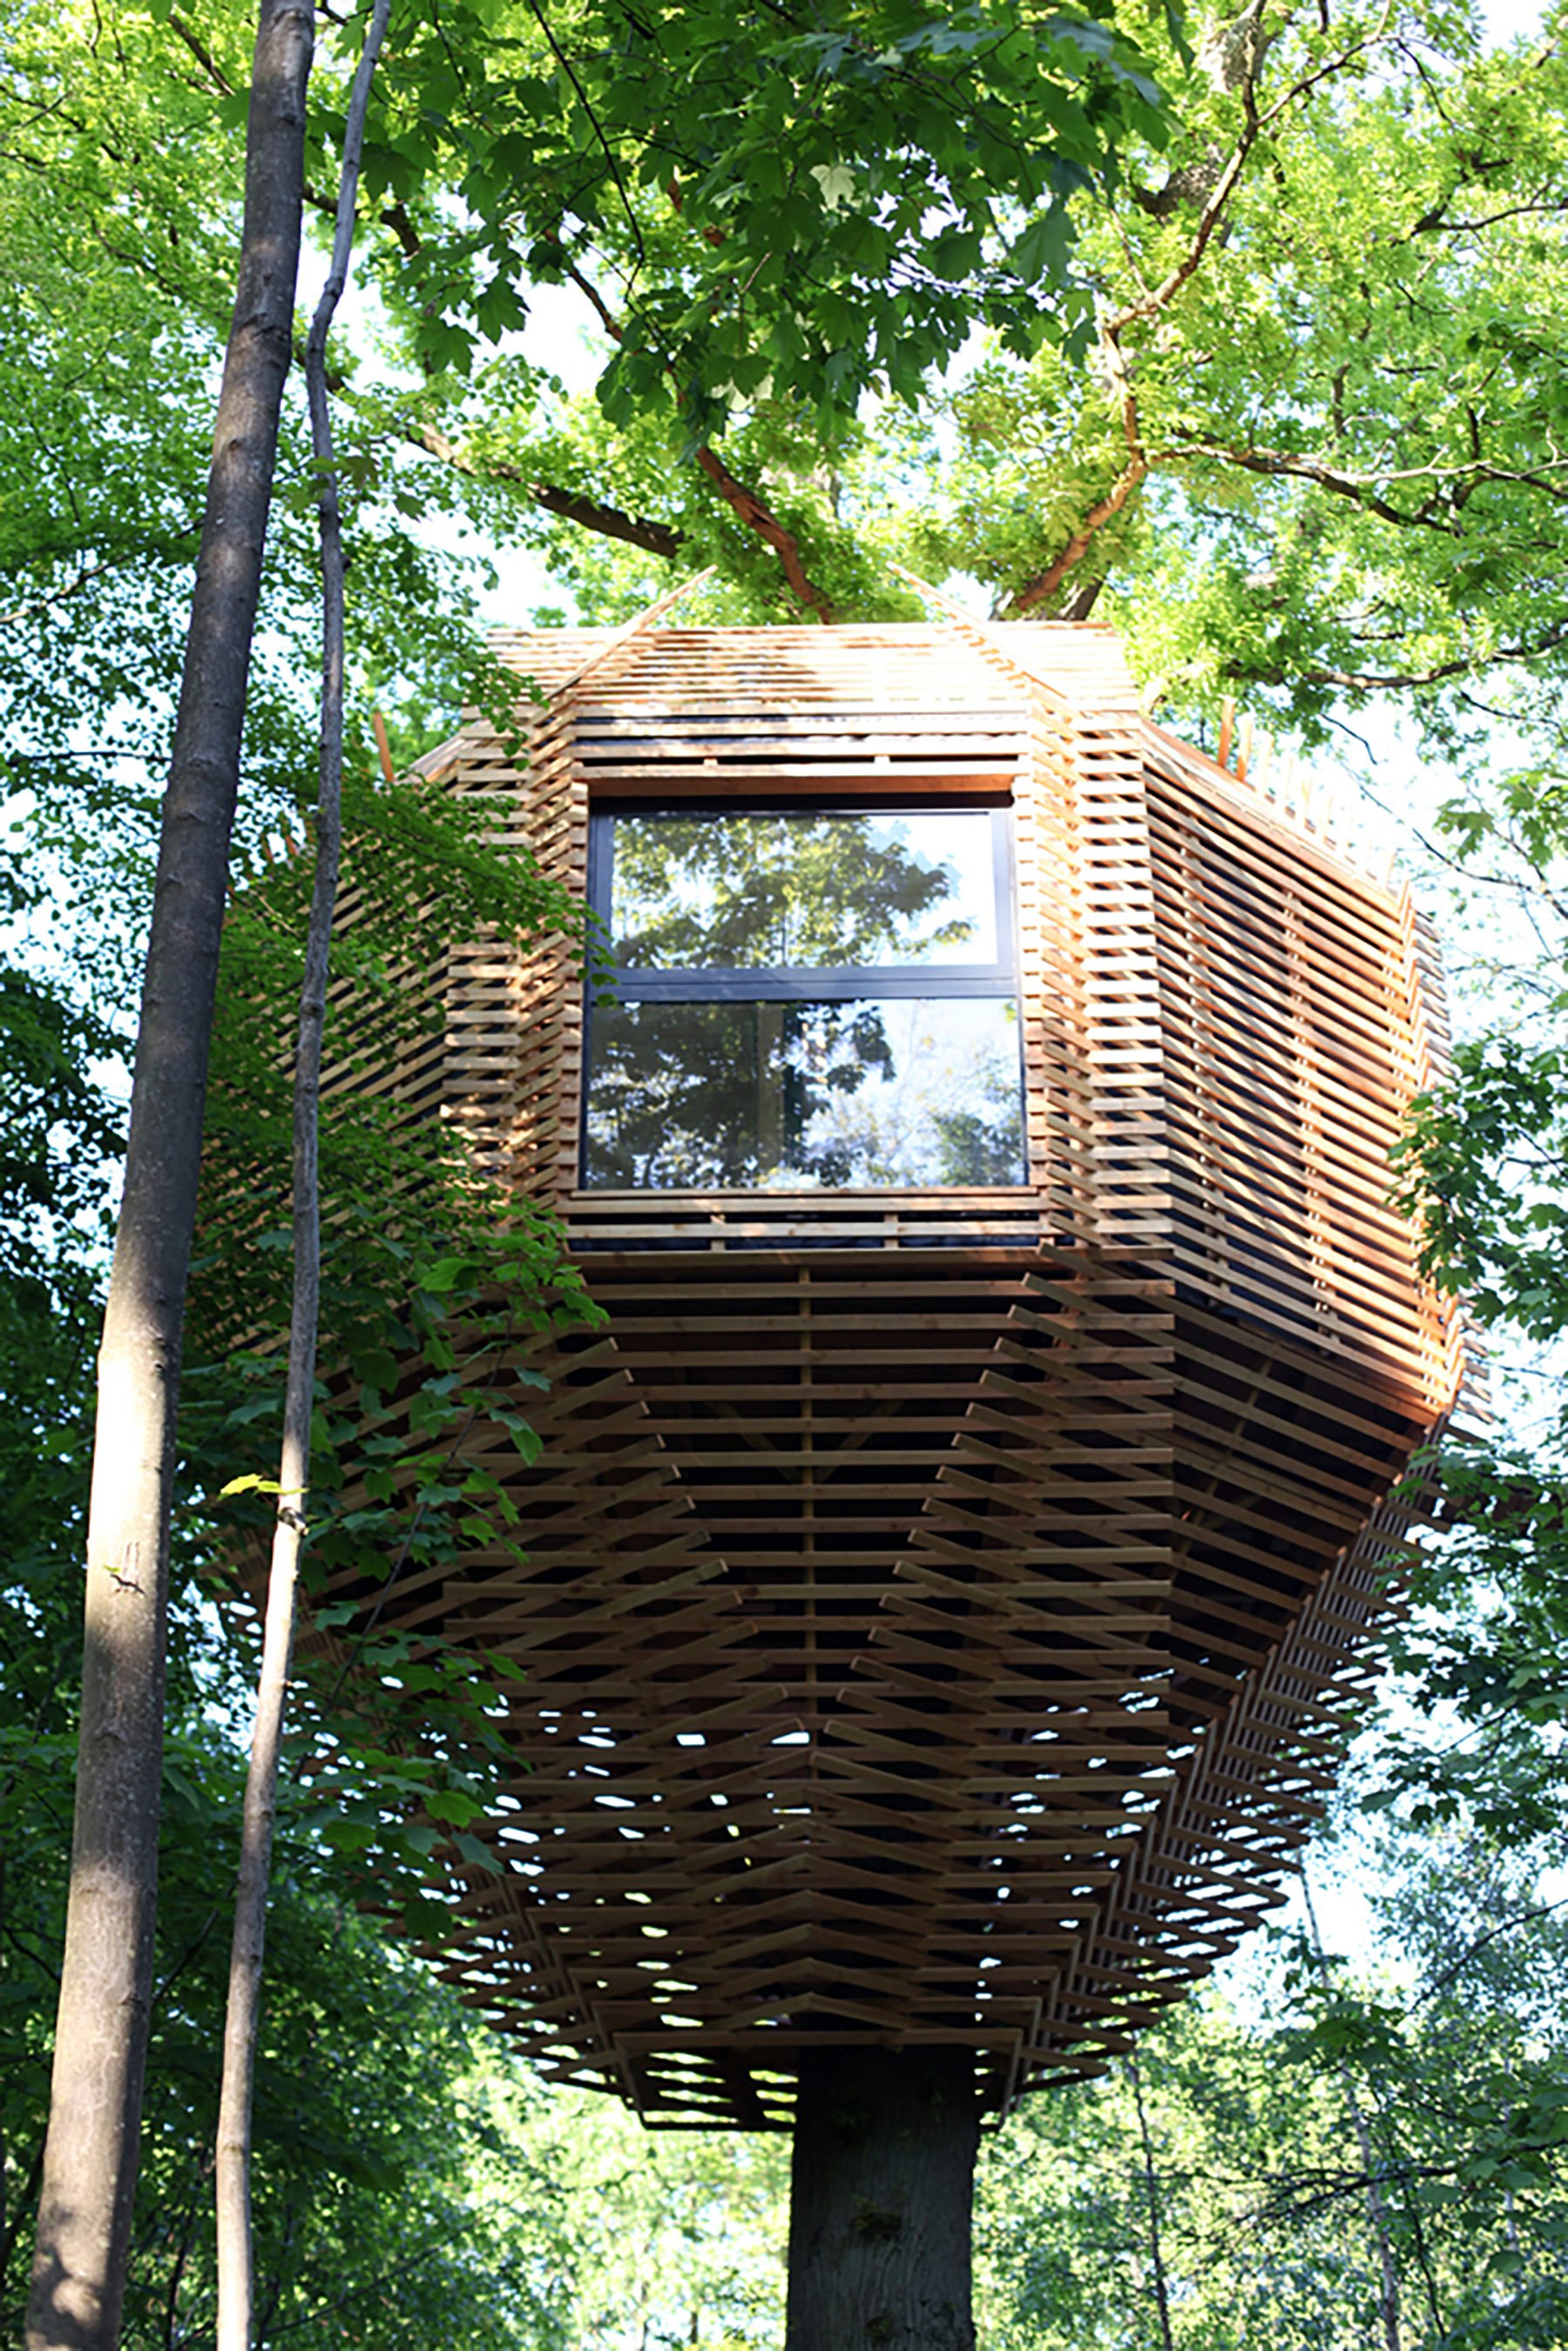 iGNANT-Architecture-Atelier-Lavit-Origin-Tree-House-011